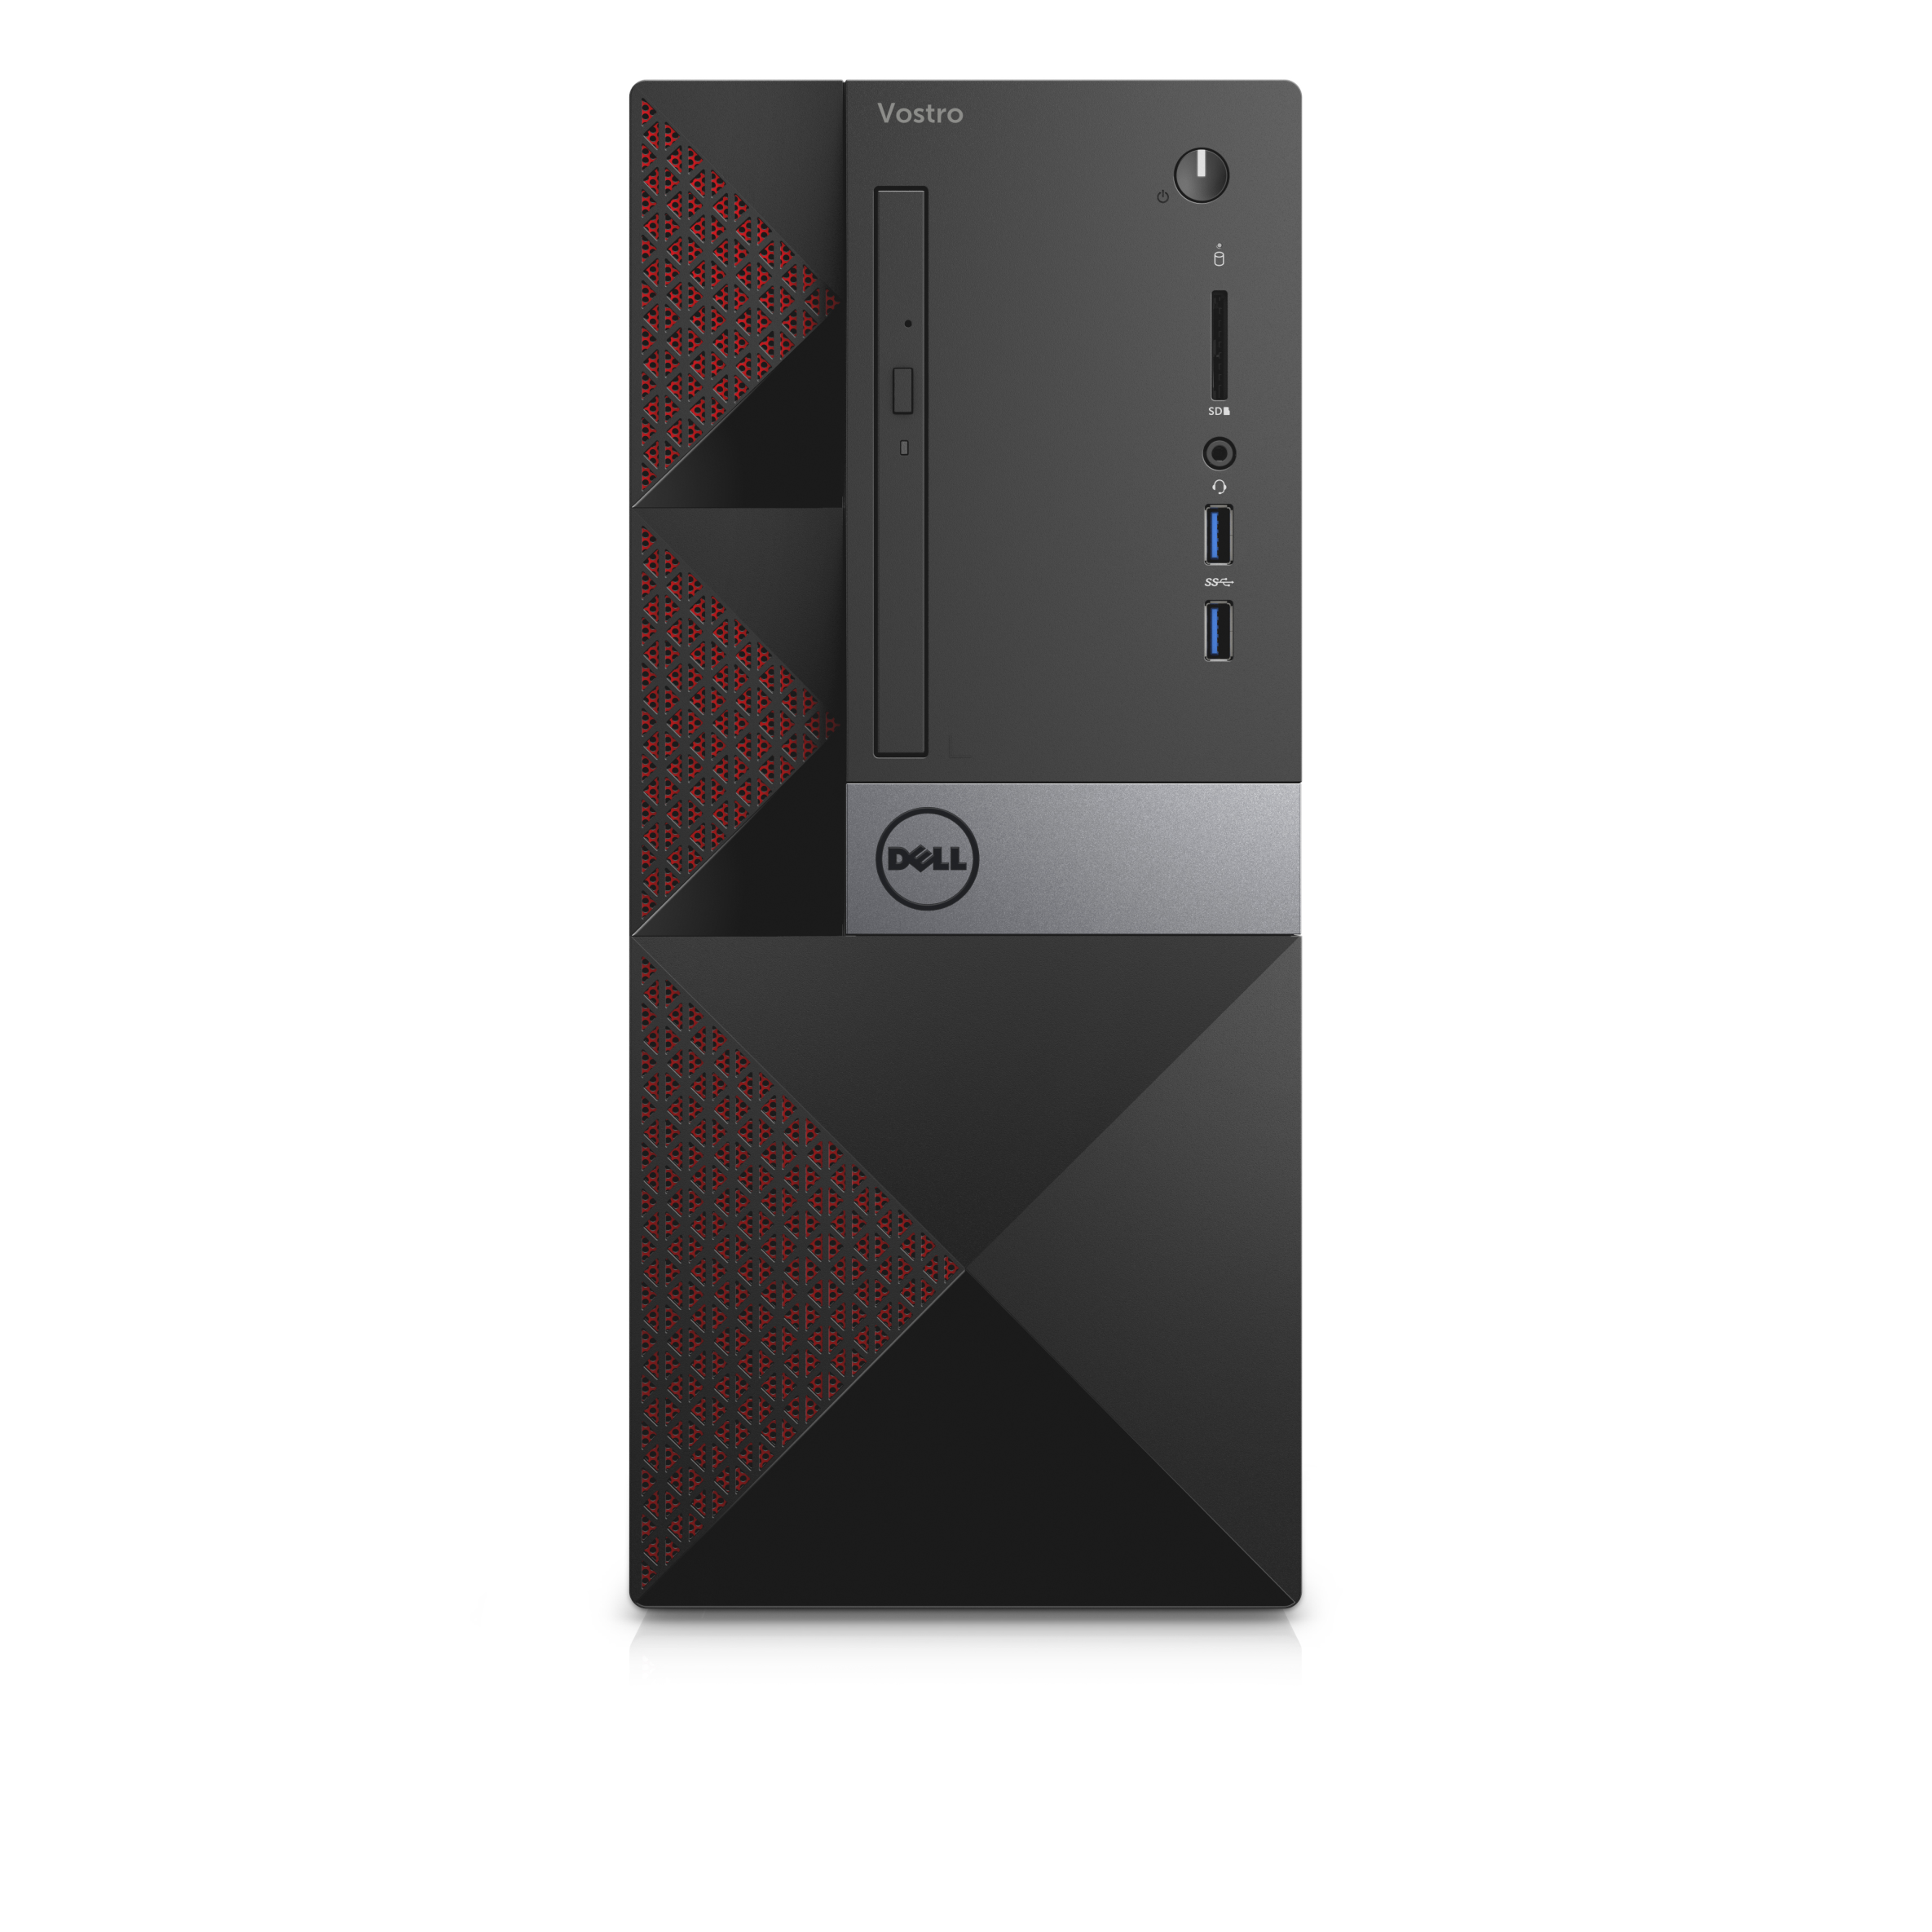 DELL Vostro 3668 MT/i5-7400/4GB/1TB/Intel HD/DVD-RW/Win10 Pro 64bit